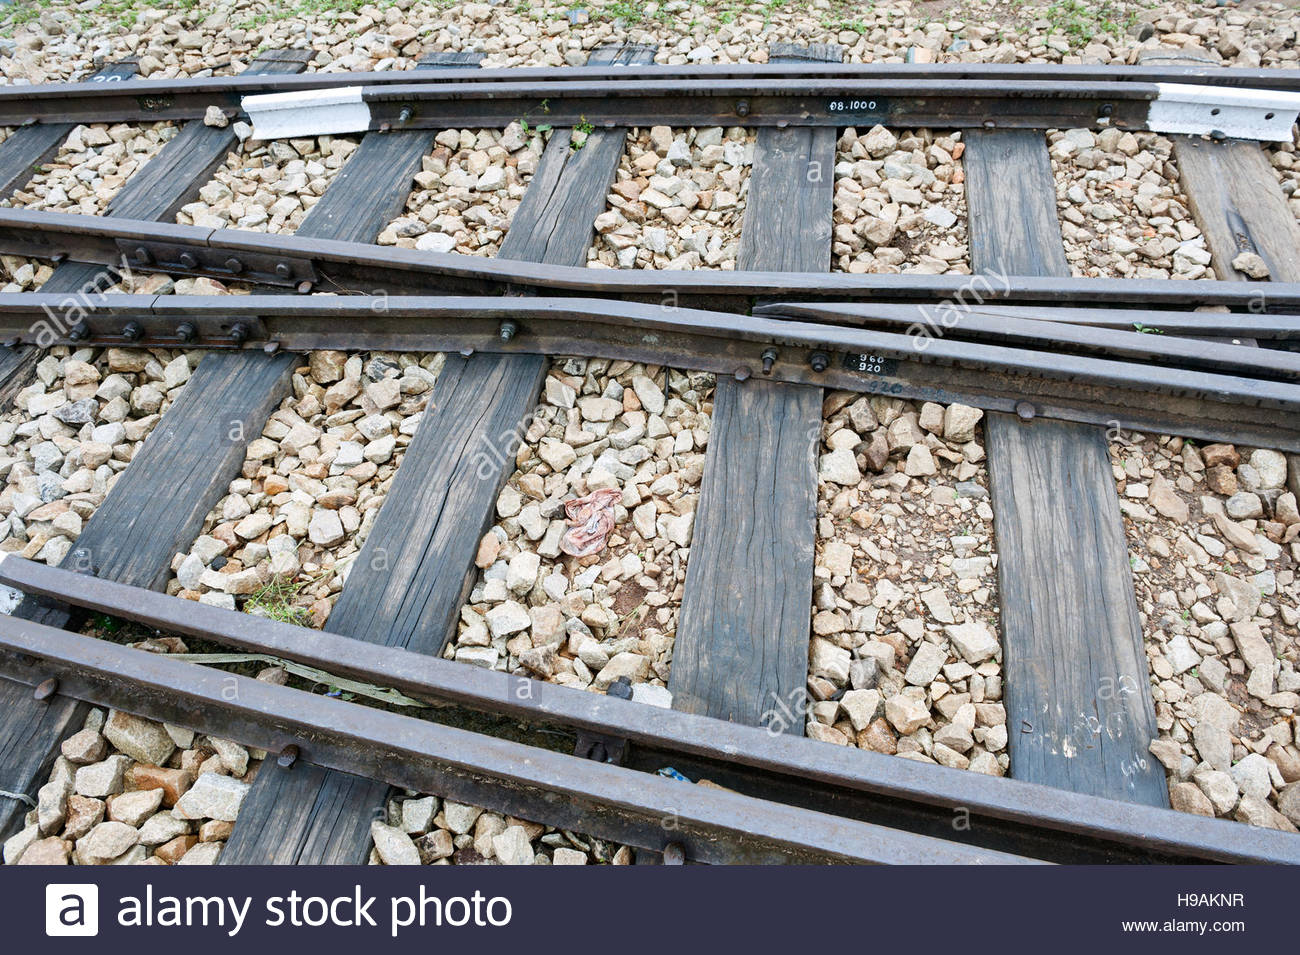 Dalat Vietnam Dalat Railways station. Rail track points with wooden sleepers and ballast stones. - Stock Image